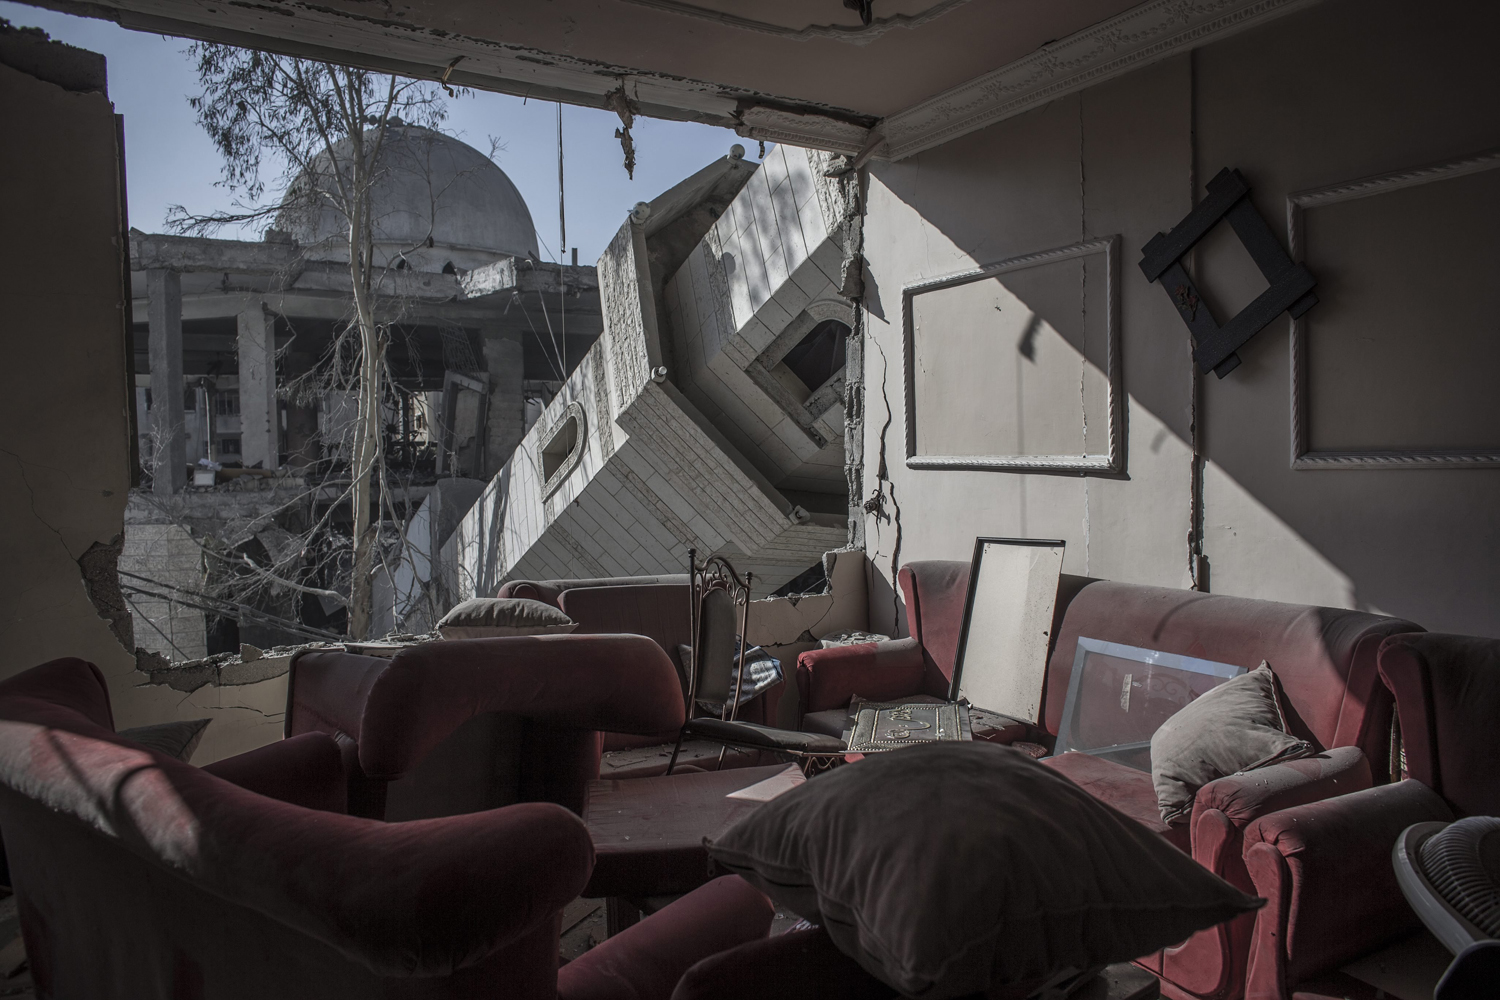 Jul. 31, 2014. The collapsed minaret of a mosque seen from the destroyed living room of a Palestinian family in a building across the street in Gaza City.